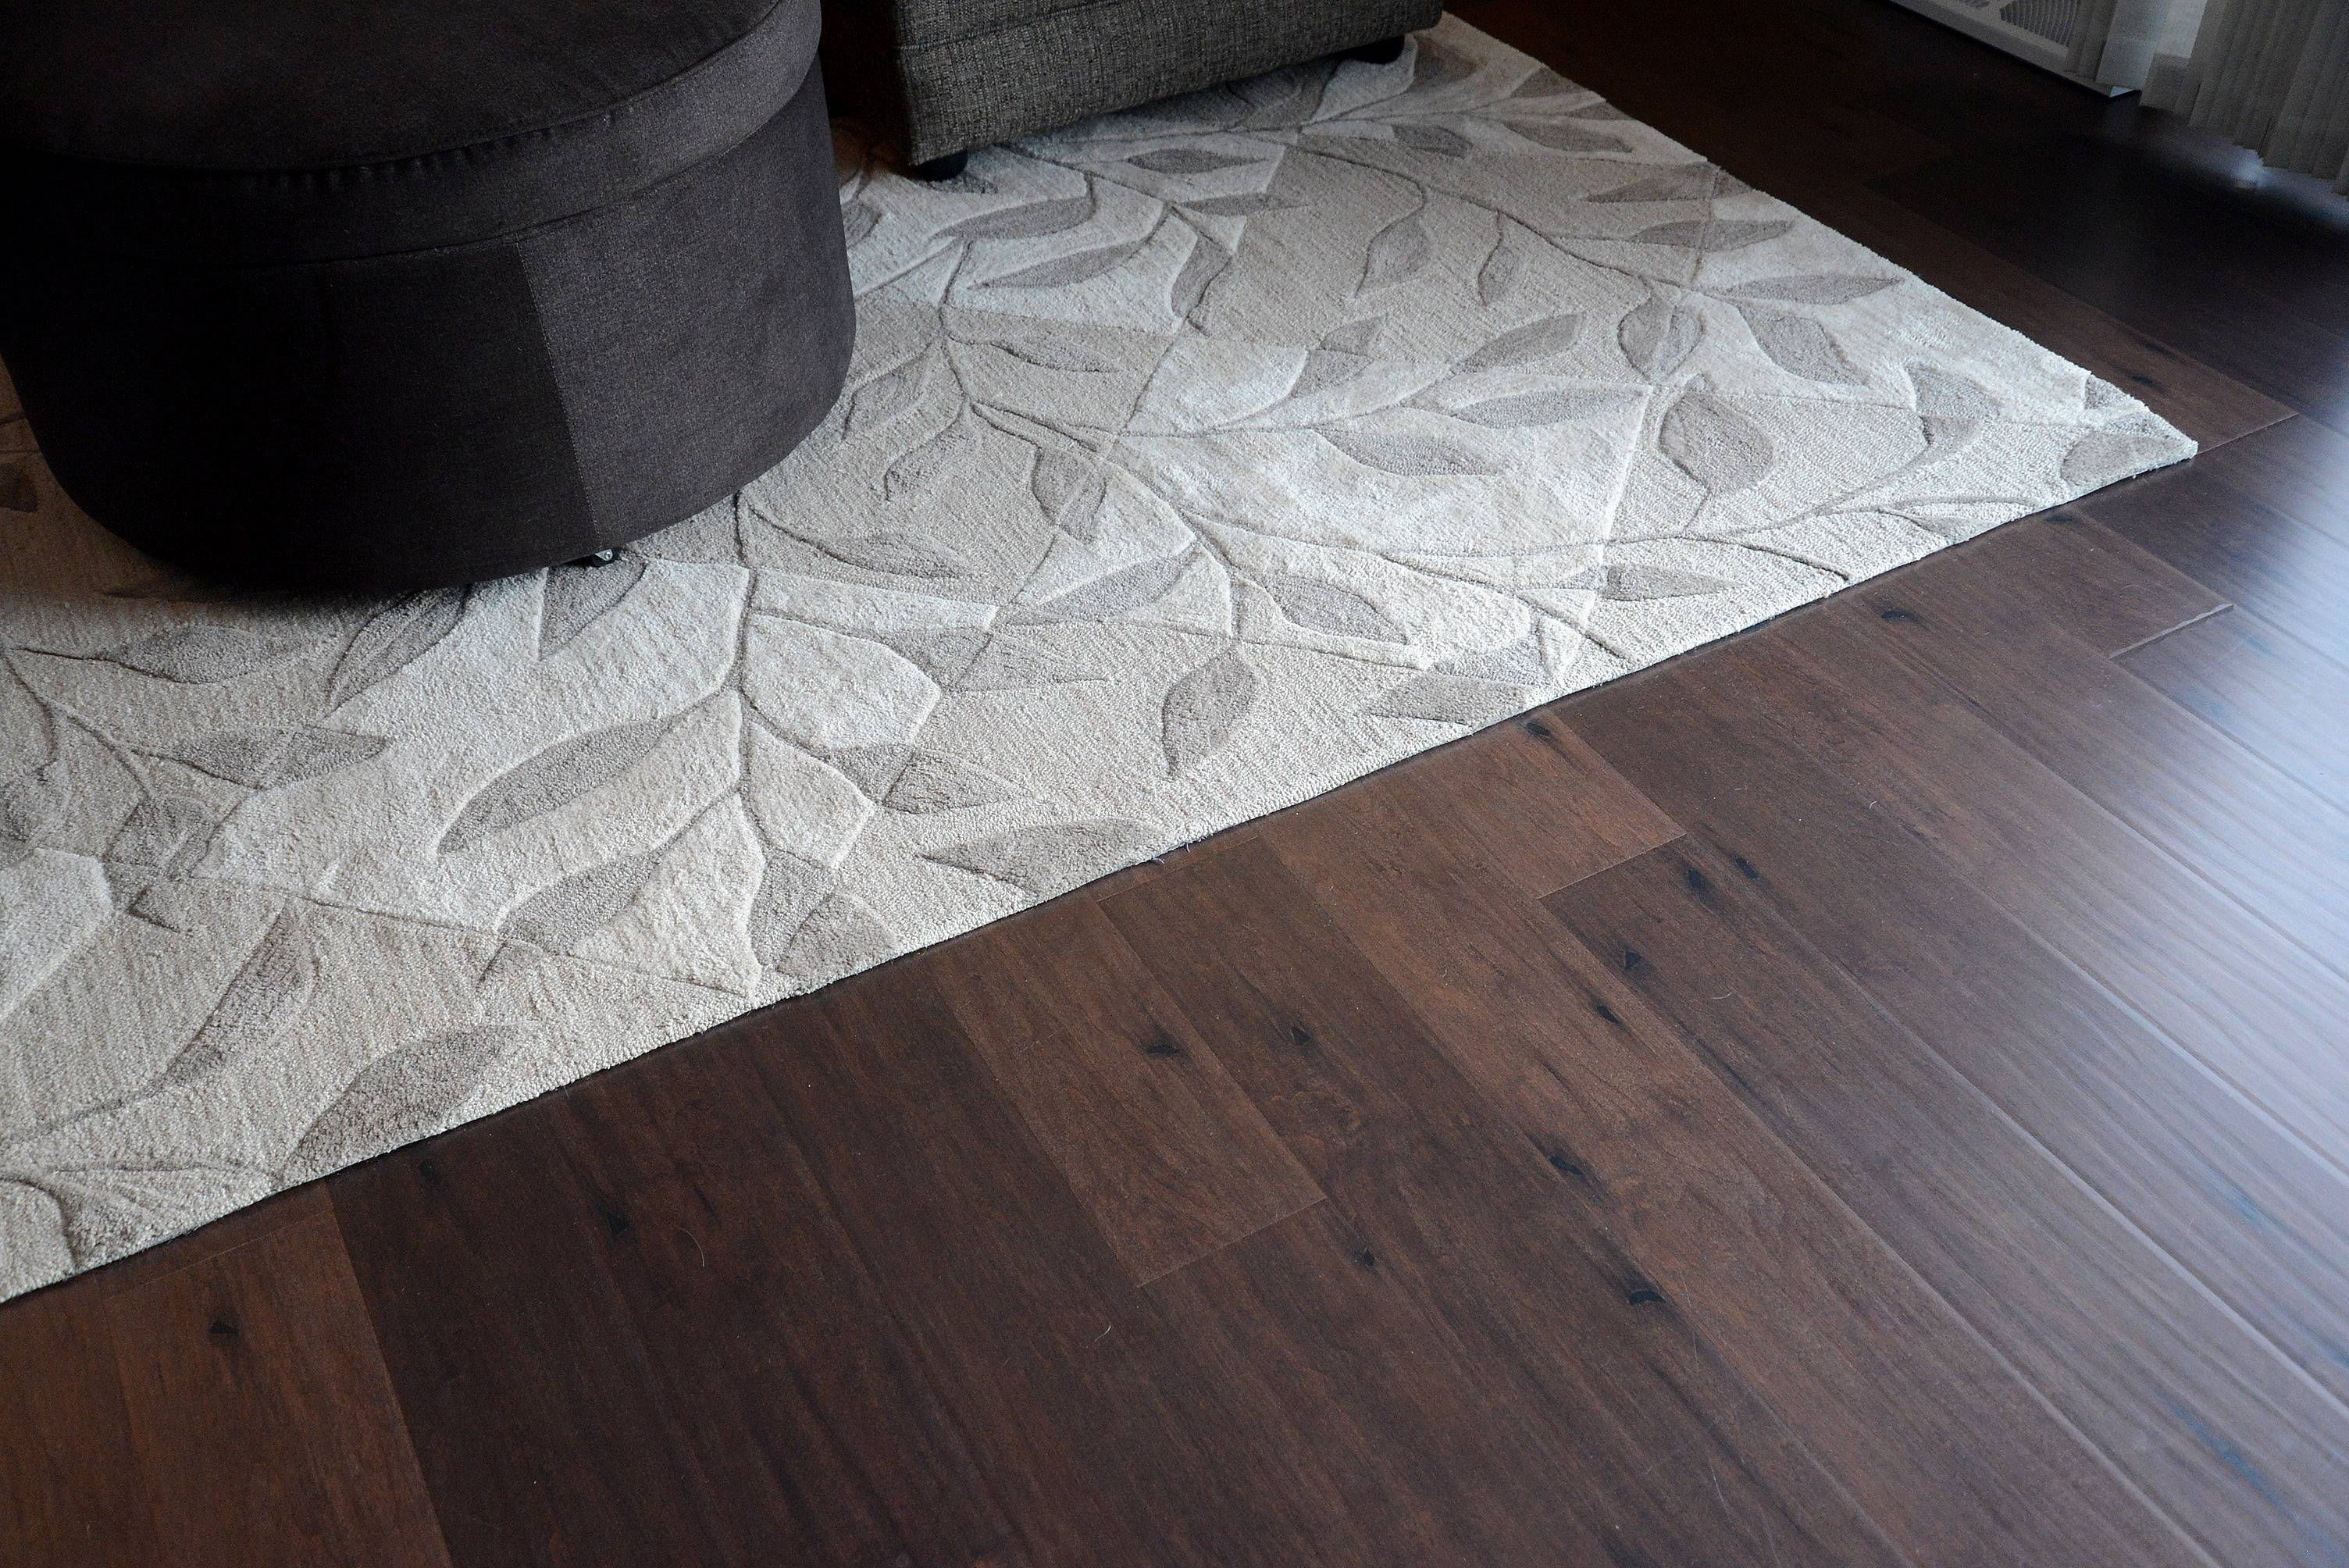 The Burcks replaced green shag carpeting with wide plank laminate flooring from Century Tile, toppped by an area rug in two shades of tan.